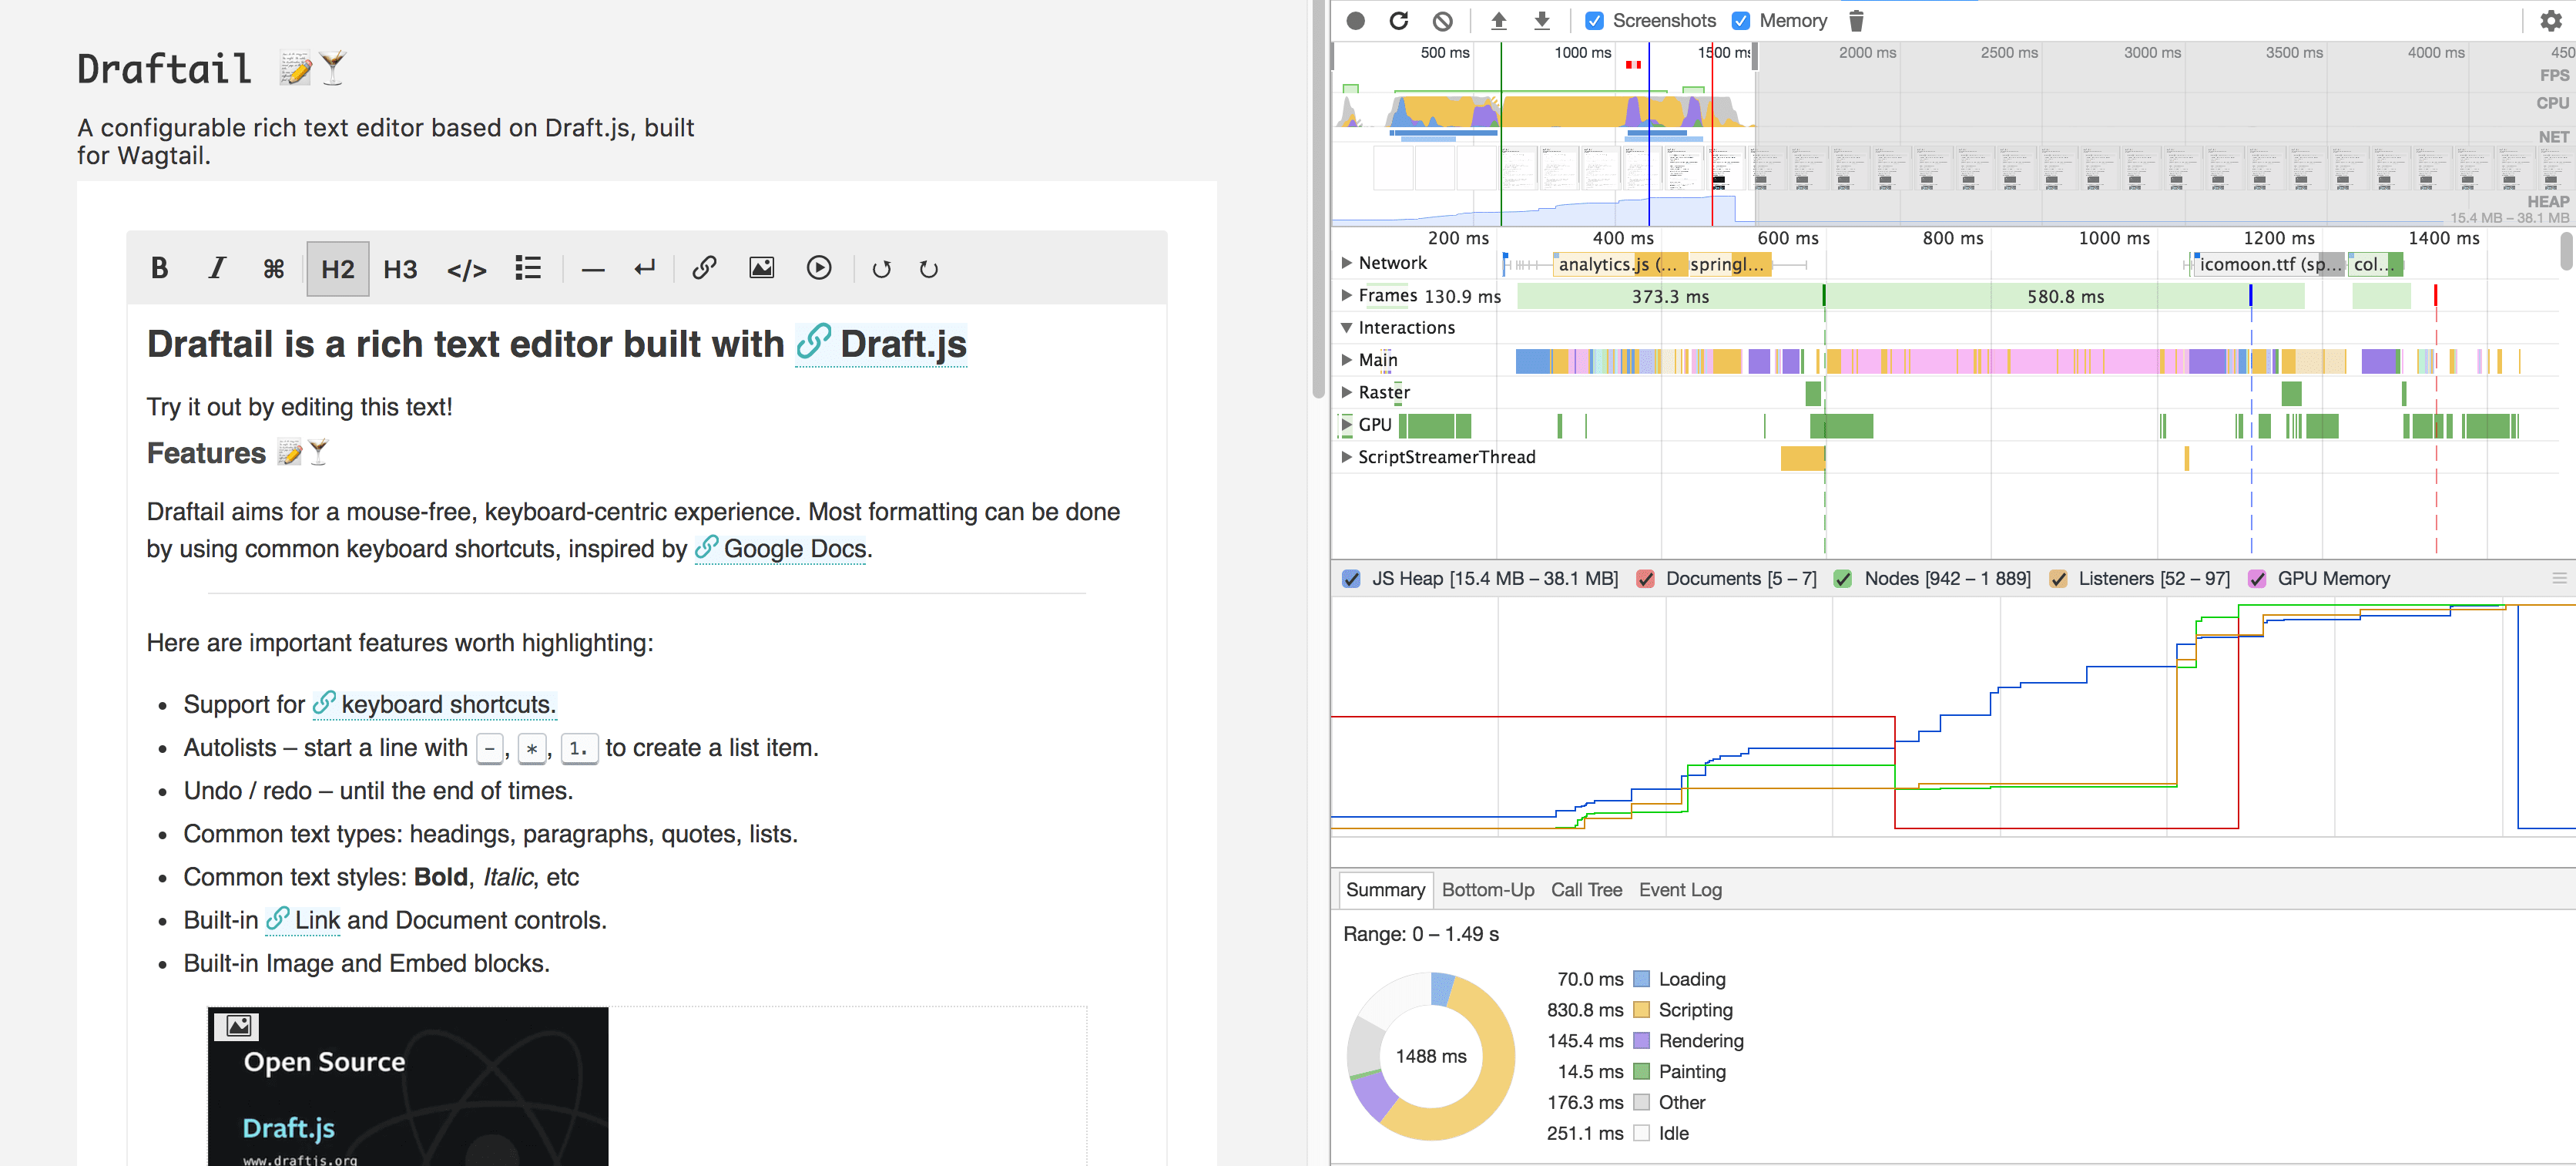 Screenshot of the Draftail demo page load profiling